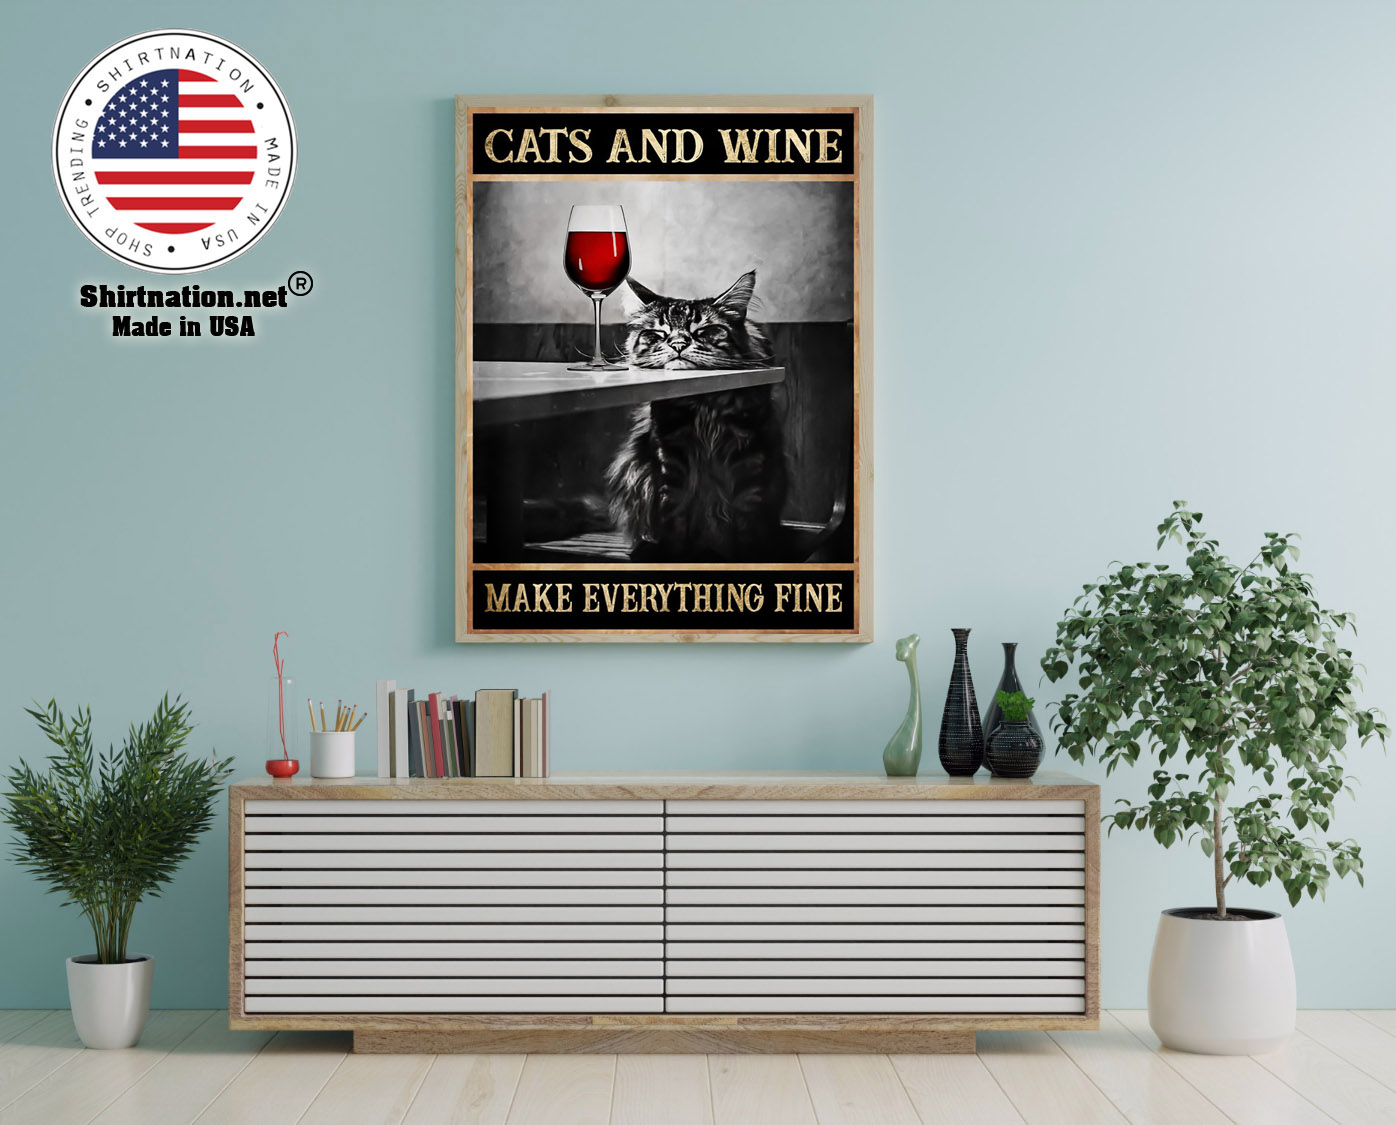 Cats and wine make everything fine poster 12